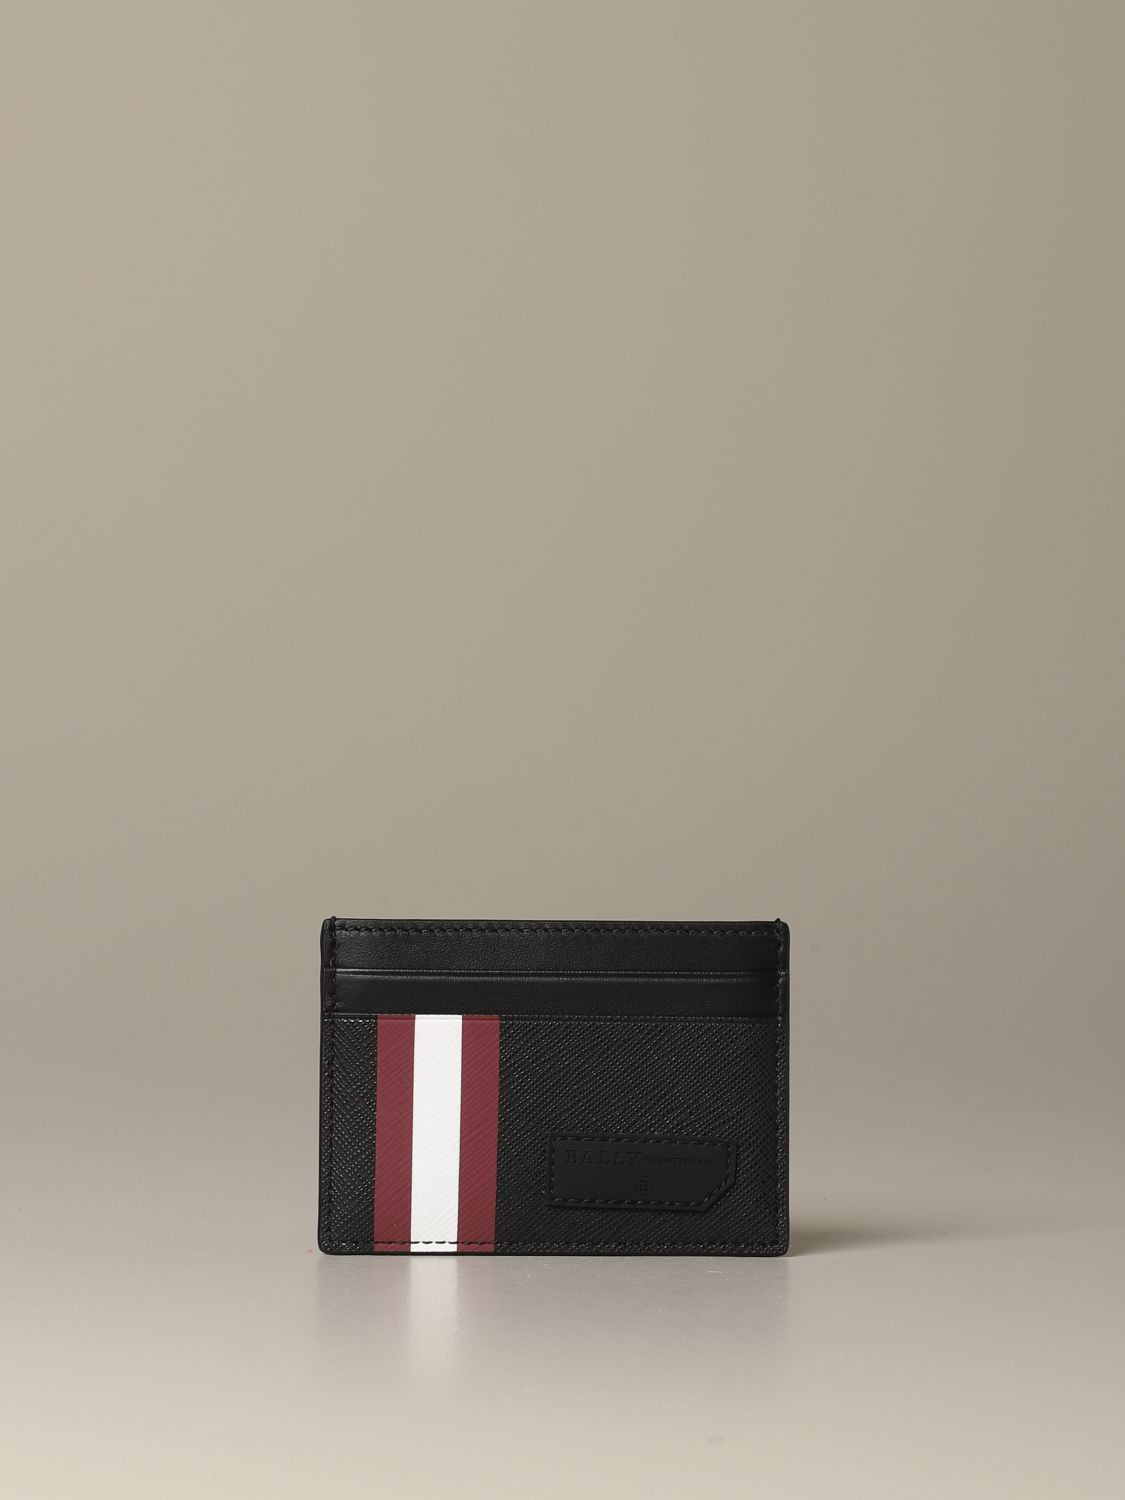 Wallet Bally: Bhar.of Bally credit card holder in coated canvas with trainspotting red 2